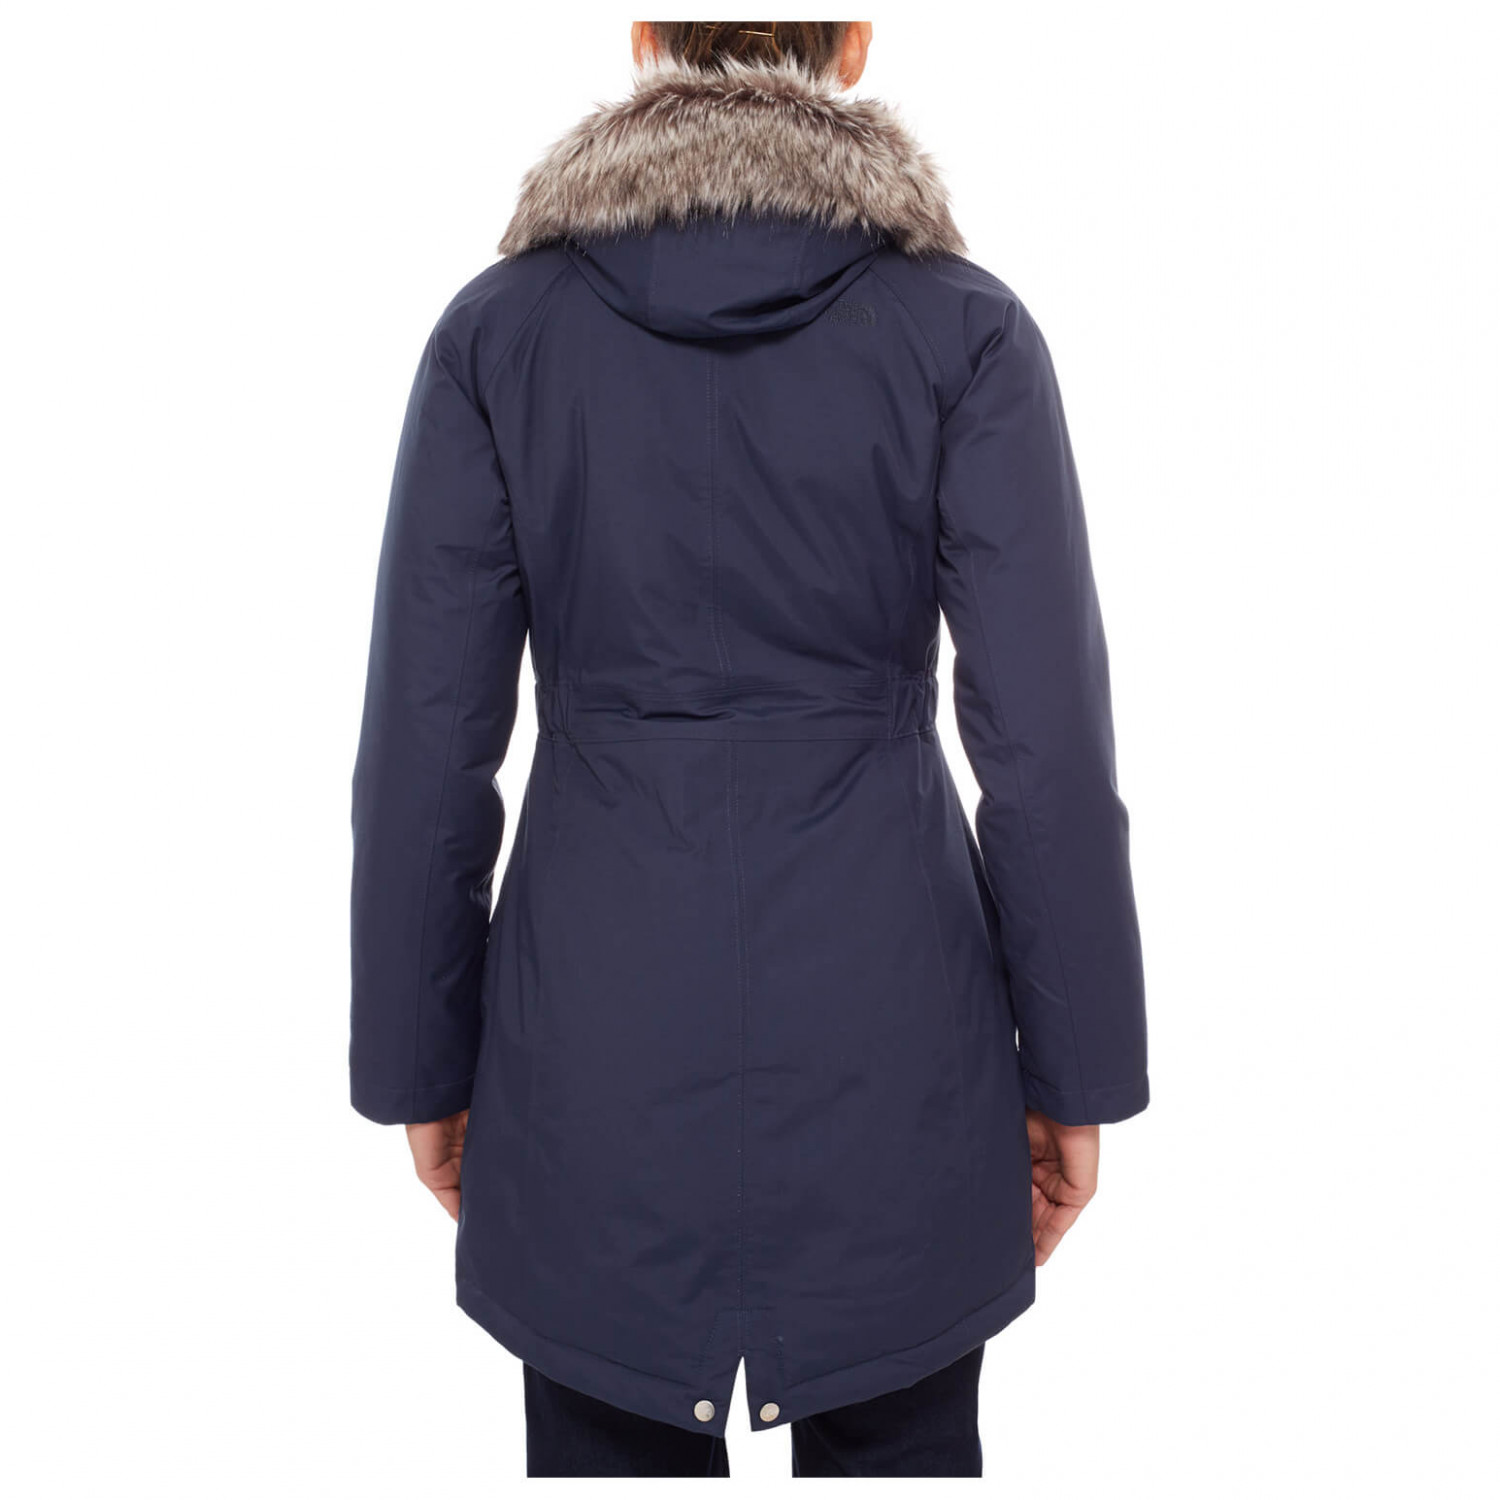 The North Face Parka Mantel >> The North Face Arctic Parka - Wintermantel Damen online kaufen | Bergfreunde.de